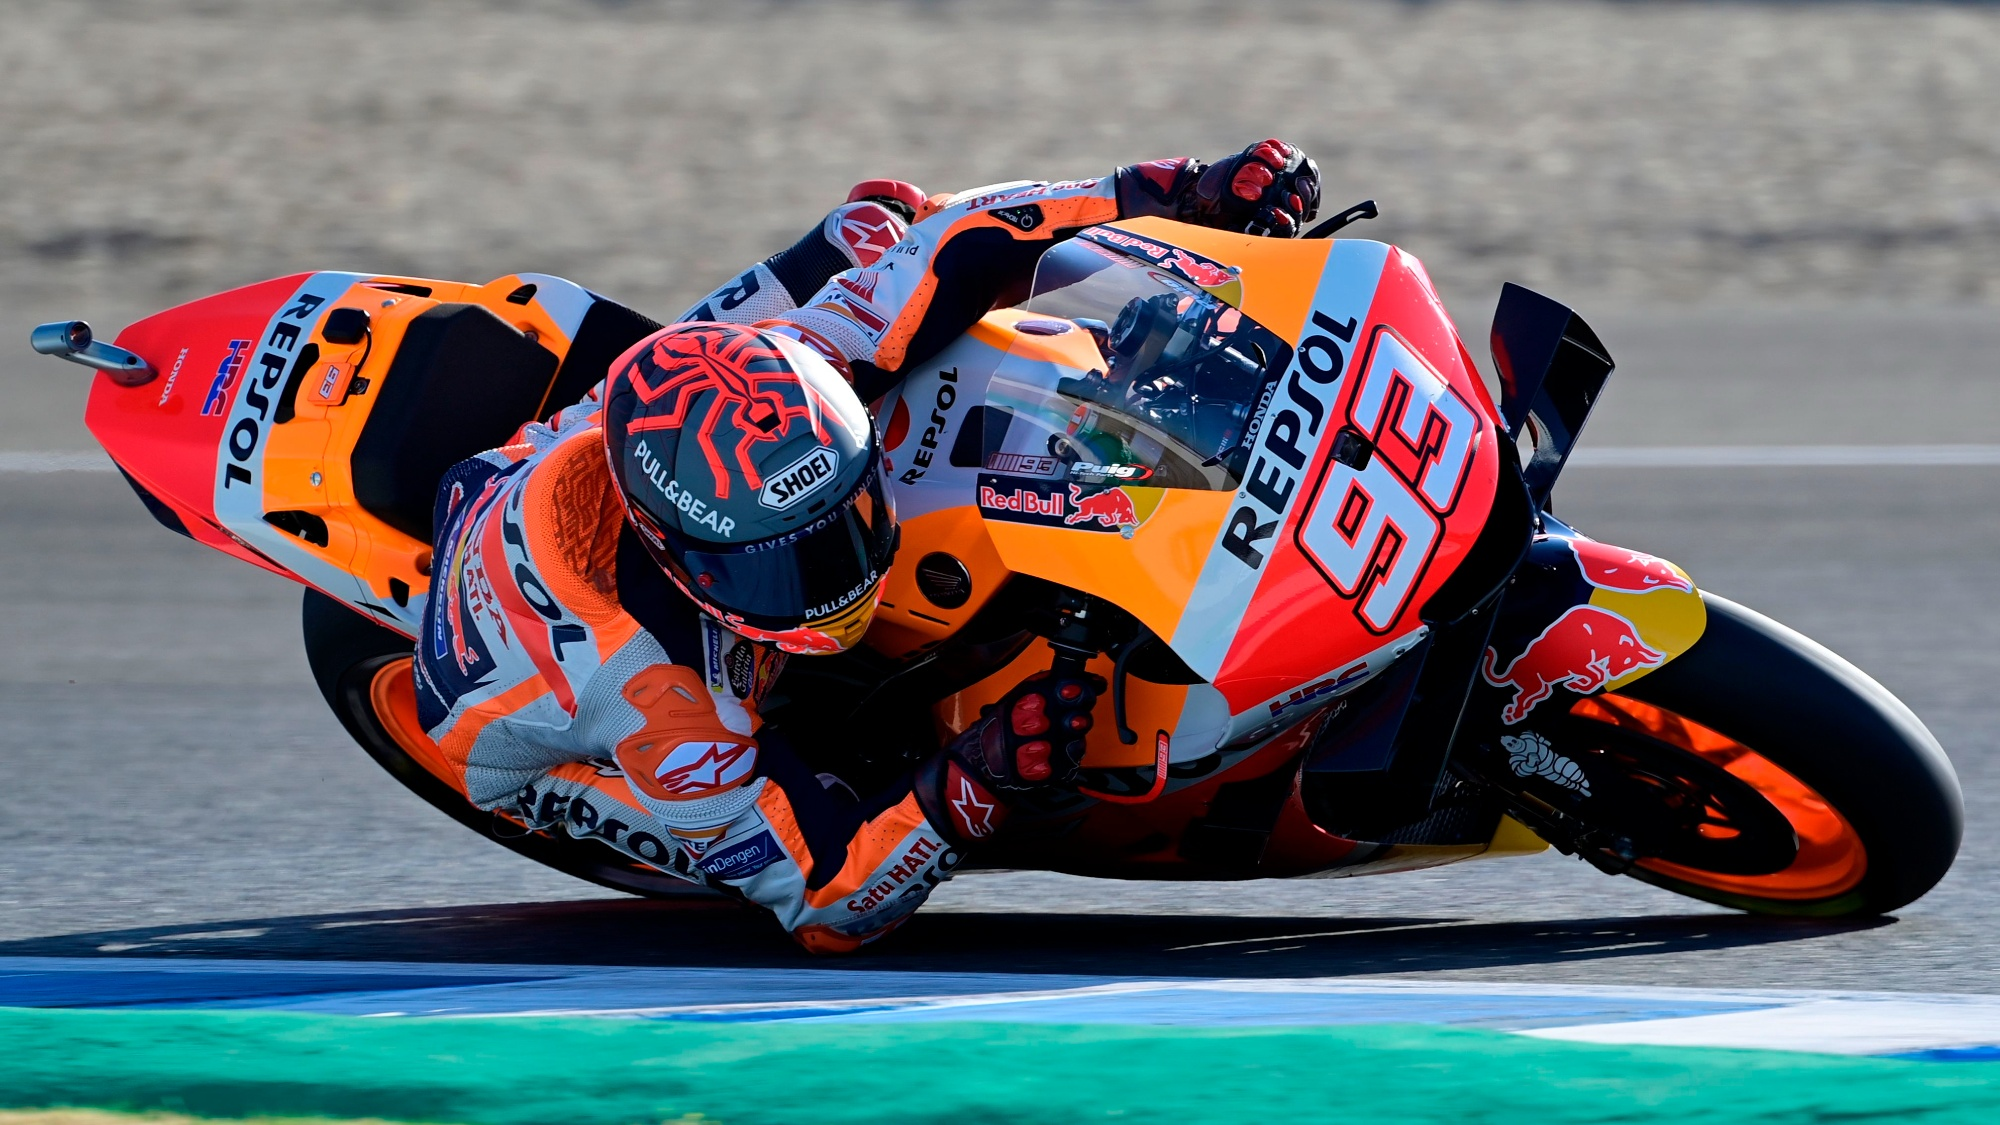 Marc Márquez confirms he will not race again in the 2020 MotoGP season